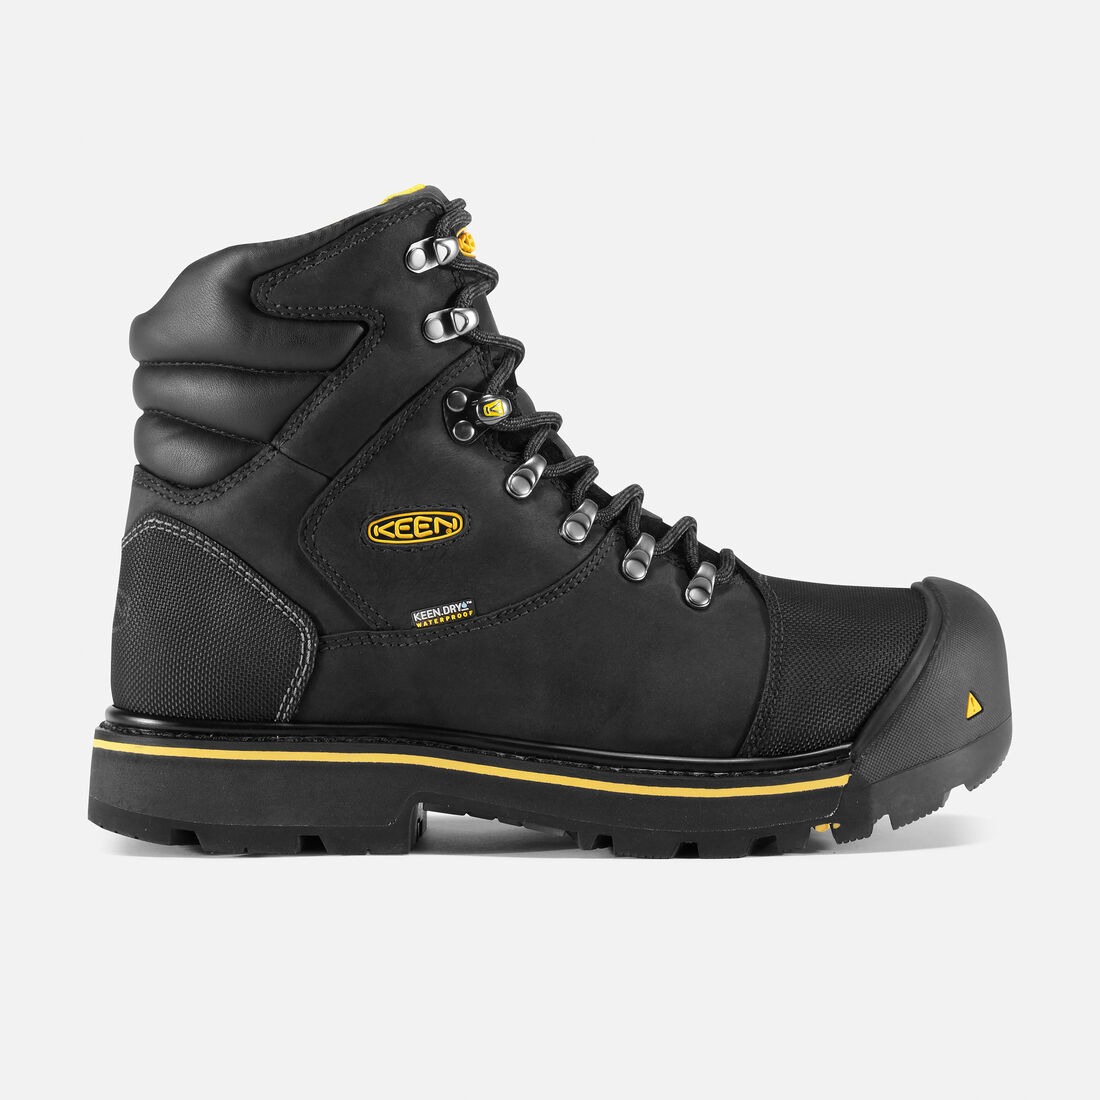 e370053feac1 Men s Milwaukee Waterproof (Steel Toe) in Black - large view.